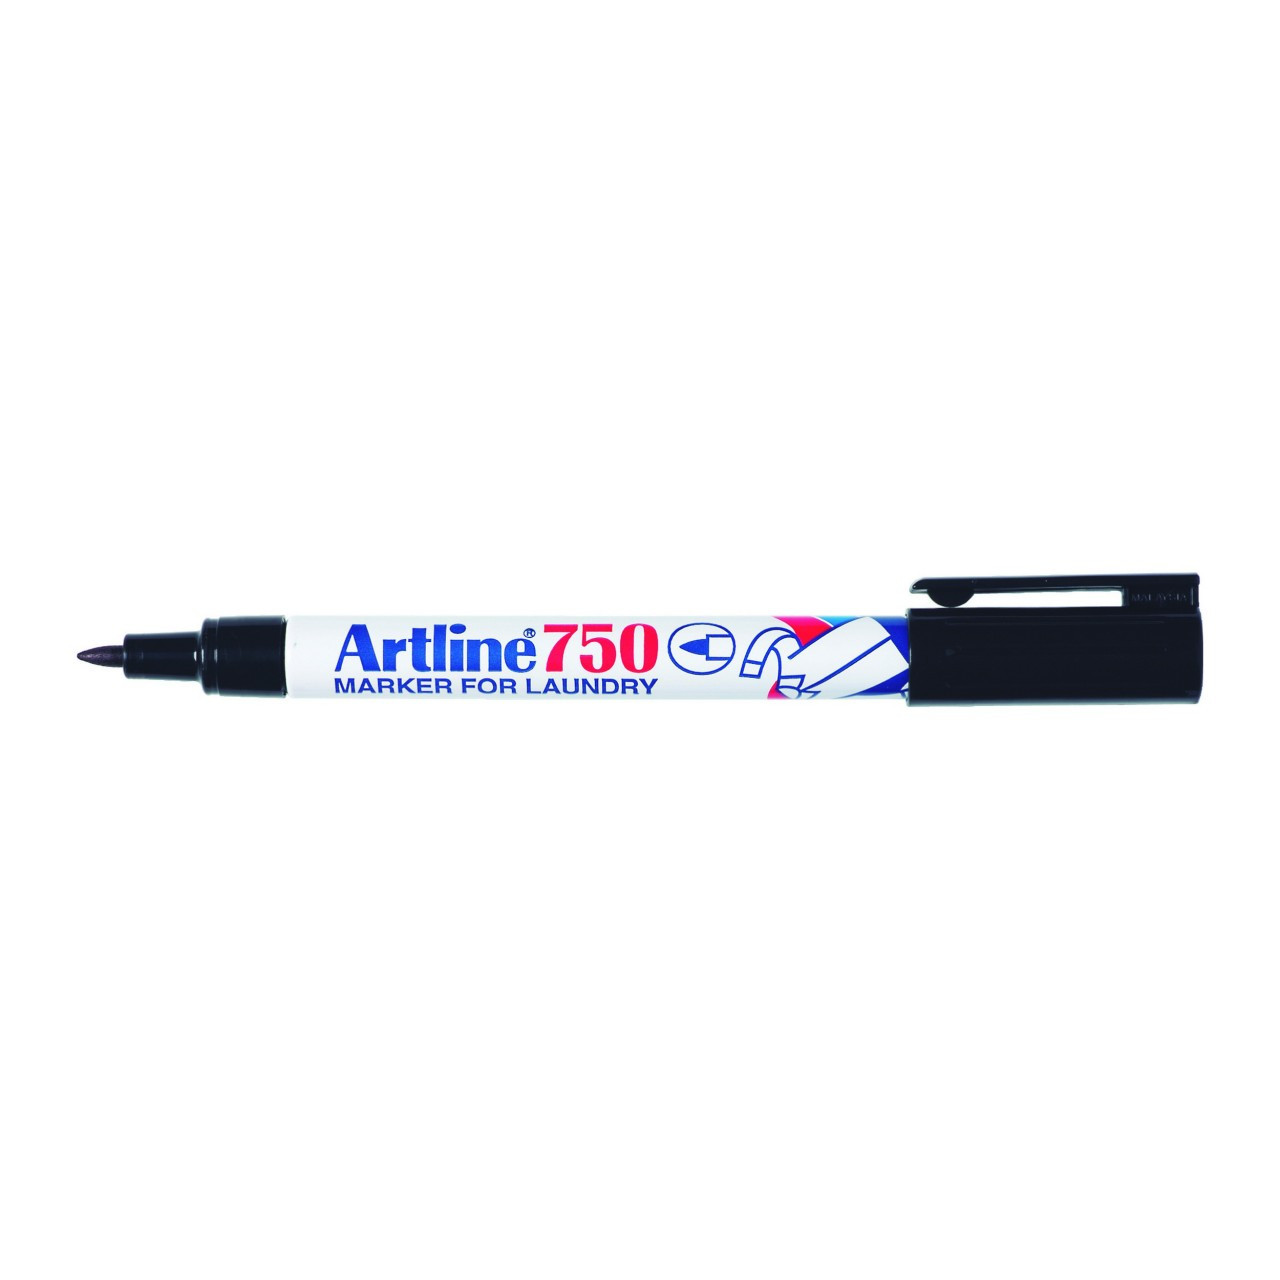 Artline 750 Laundry Marker Black 0.7Mm Bullet Nib (Bx12)